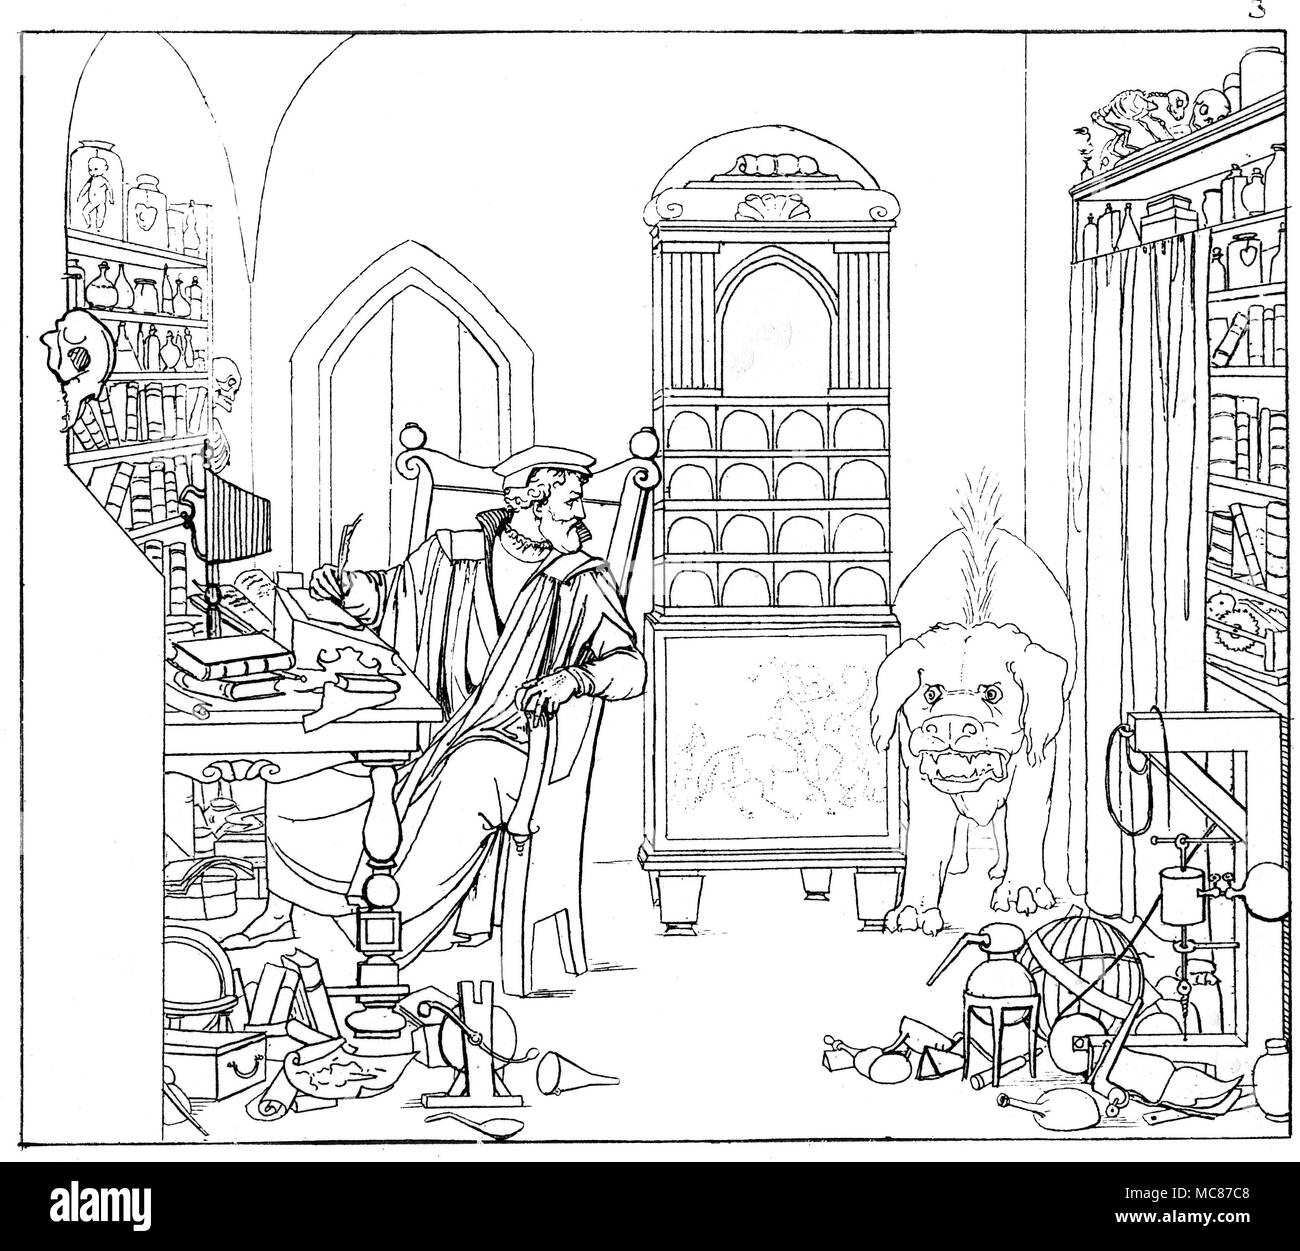 DEMONS - FAUST - MEPHISTOPHELES Faust in his study, surrounded by alchemical apparatus and books:  he is attempting to translate the first verses (presumably the first 14 verses) of the Gospel of St. John.  The intruding monstrous poodle (see previously on the heath) is the appearance of Mephisopheles, making its way into the study.  Faust's magic power  is not sufficiently strong to banish the creature.  Mephistophles emerges from the dog, in human form.  Engraving No. 3 in Umrisse Goethe's Faust.  Gezeichnet von Moritz Retsch, 1836. There were two distinct early editions of the Retsch series - Stock Image